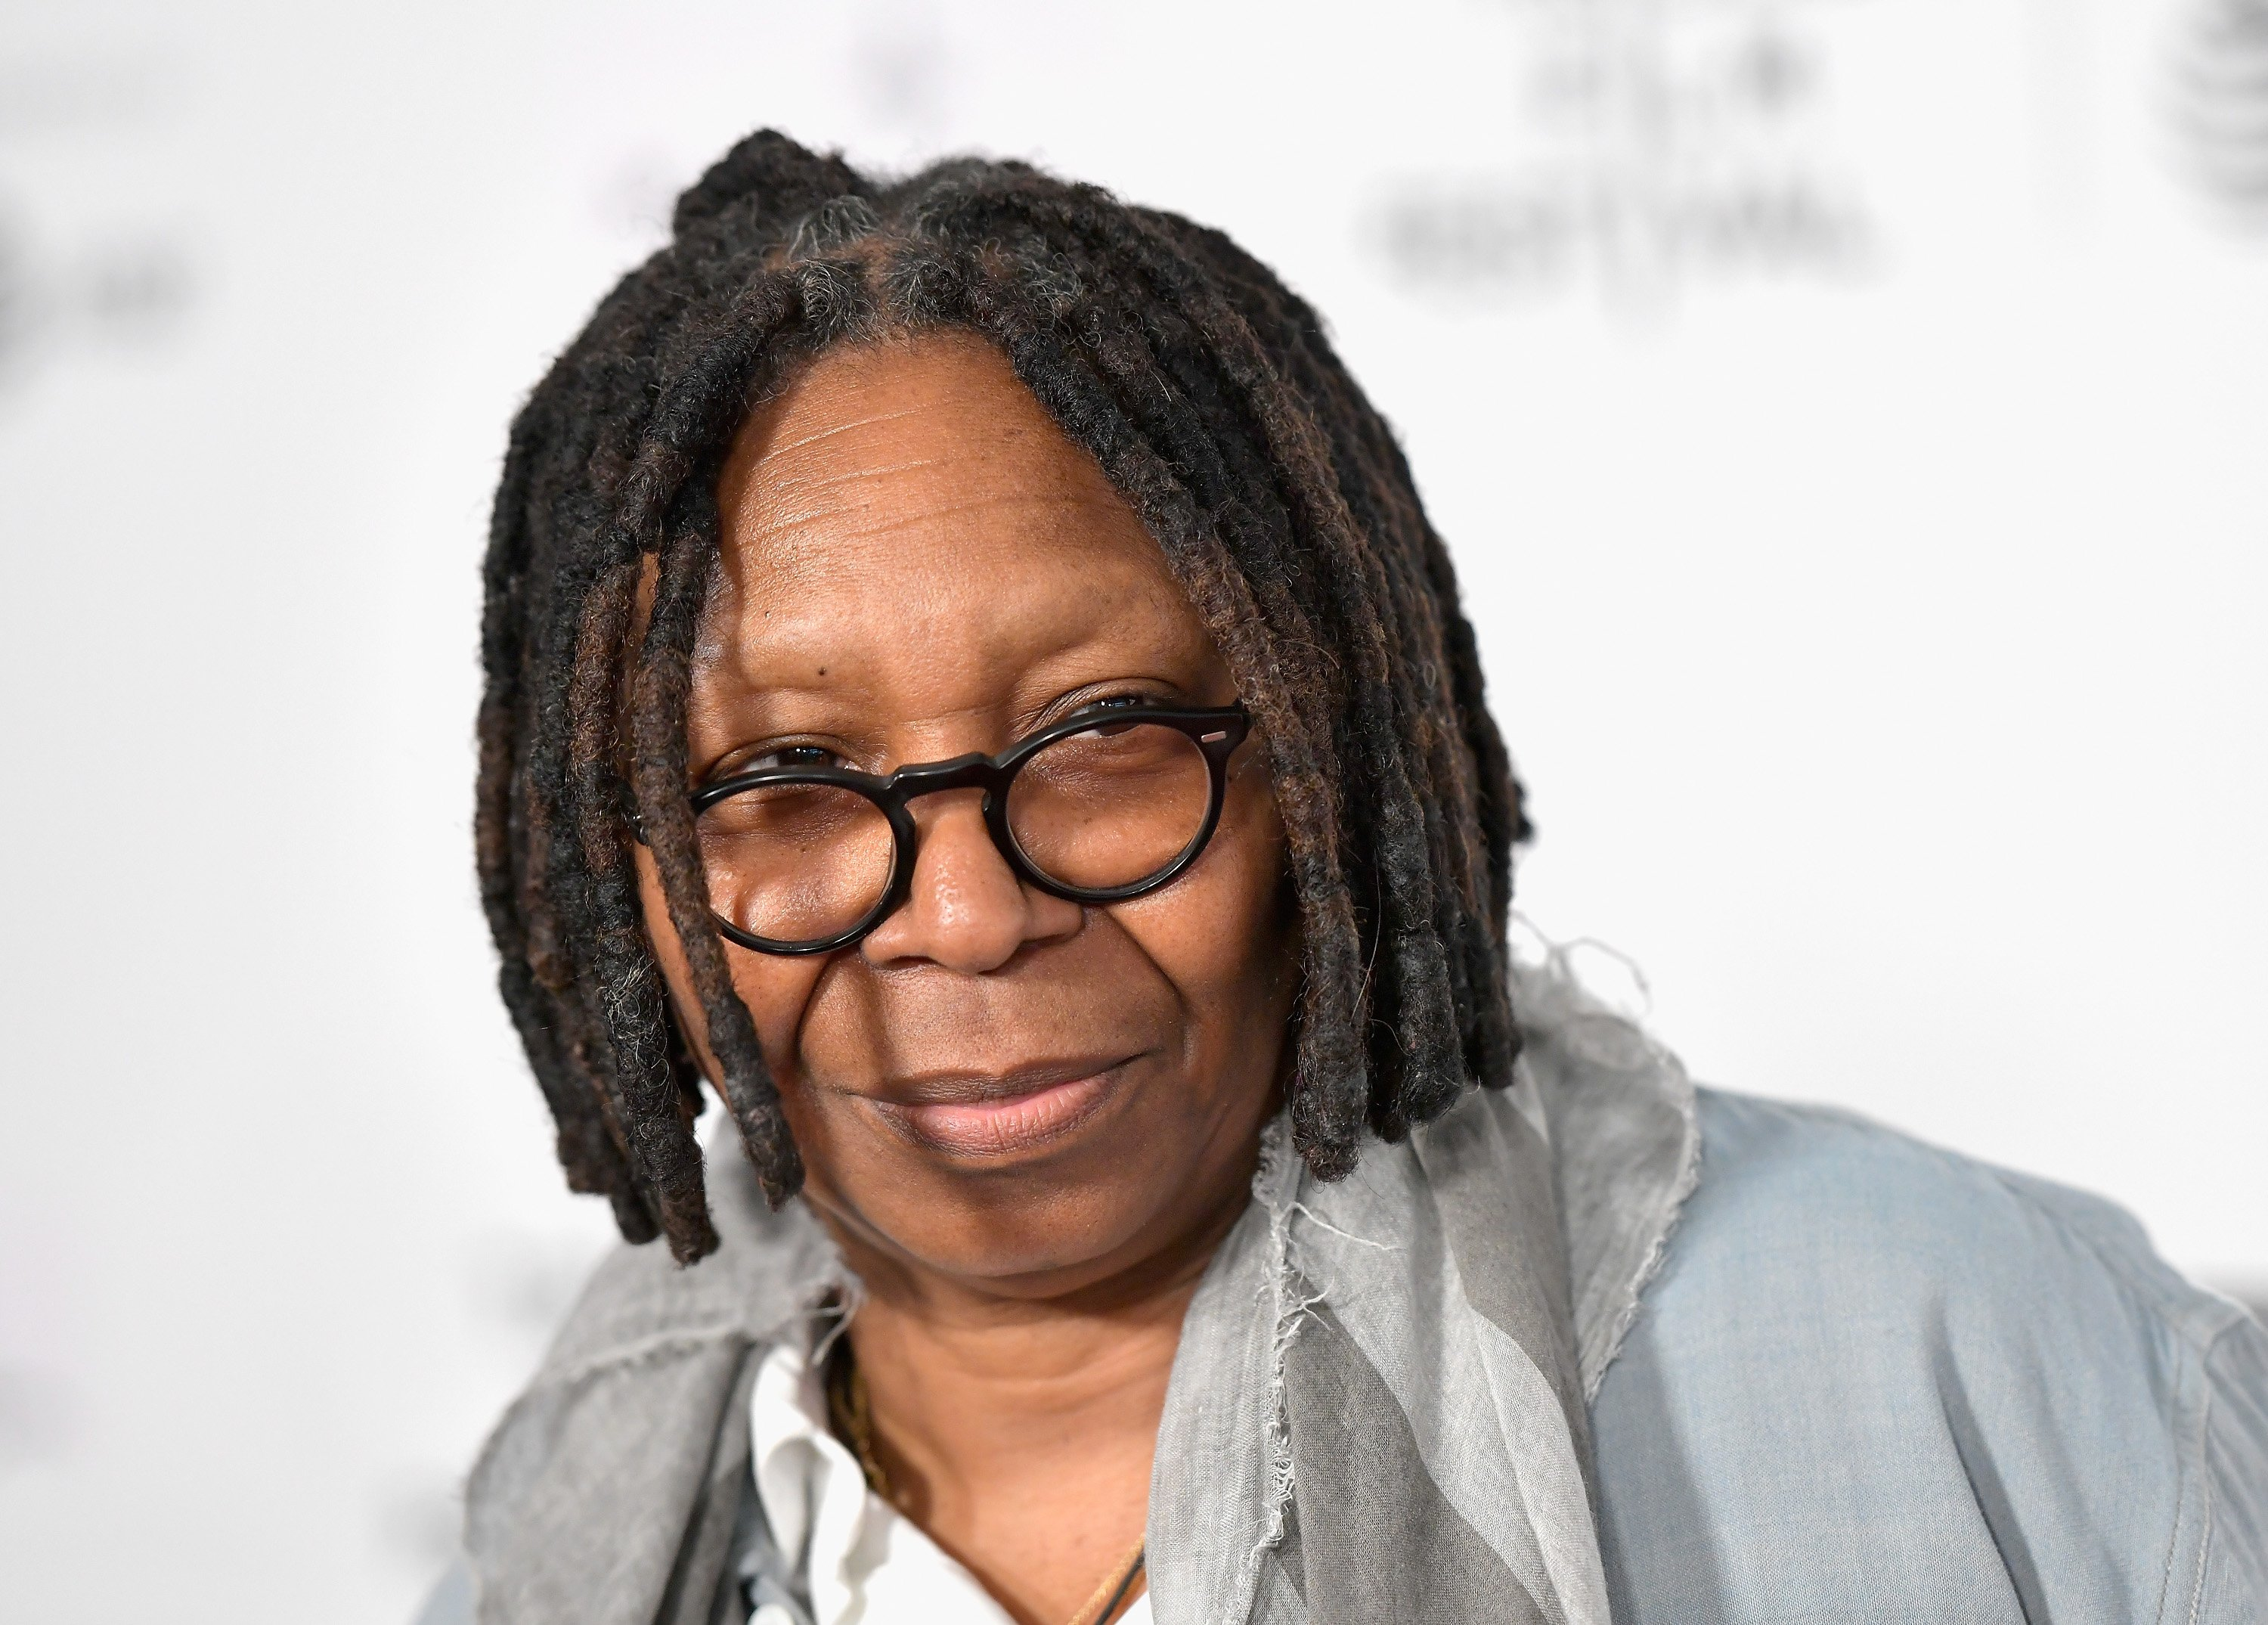 Whoopi Goldberg at the 2018 Tribeca Film Festival. | Photo: Getty Images